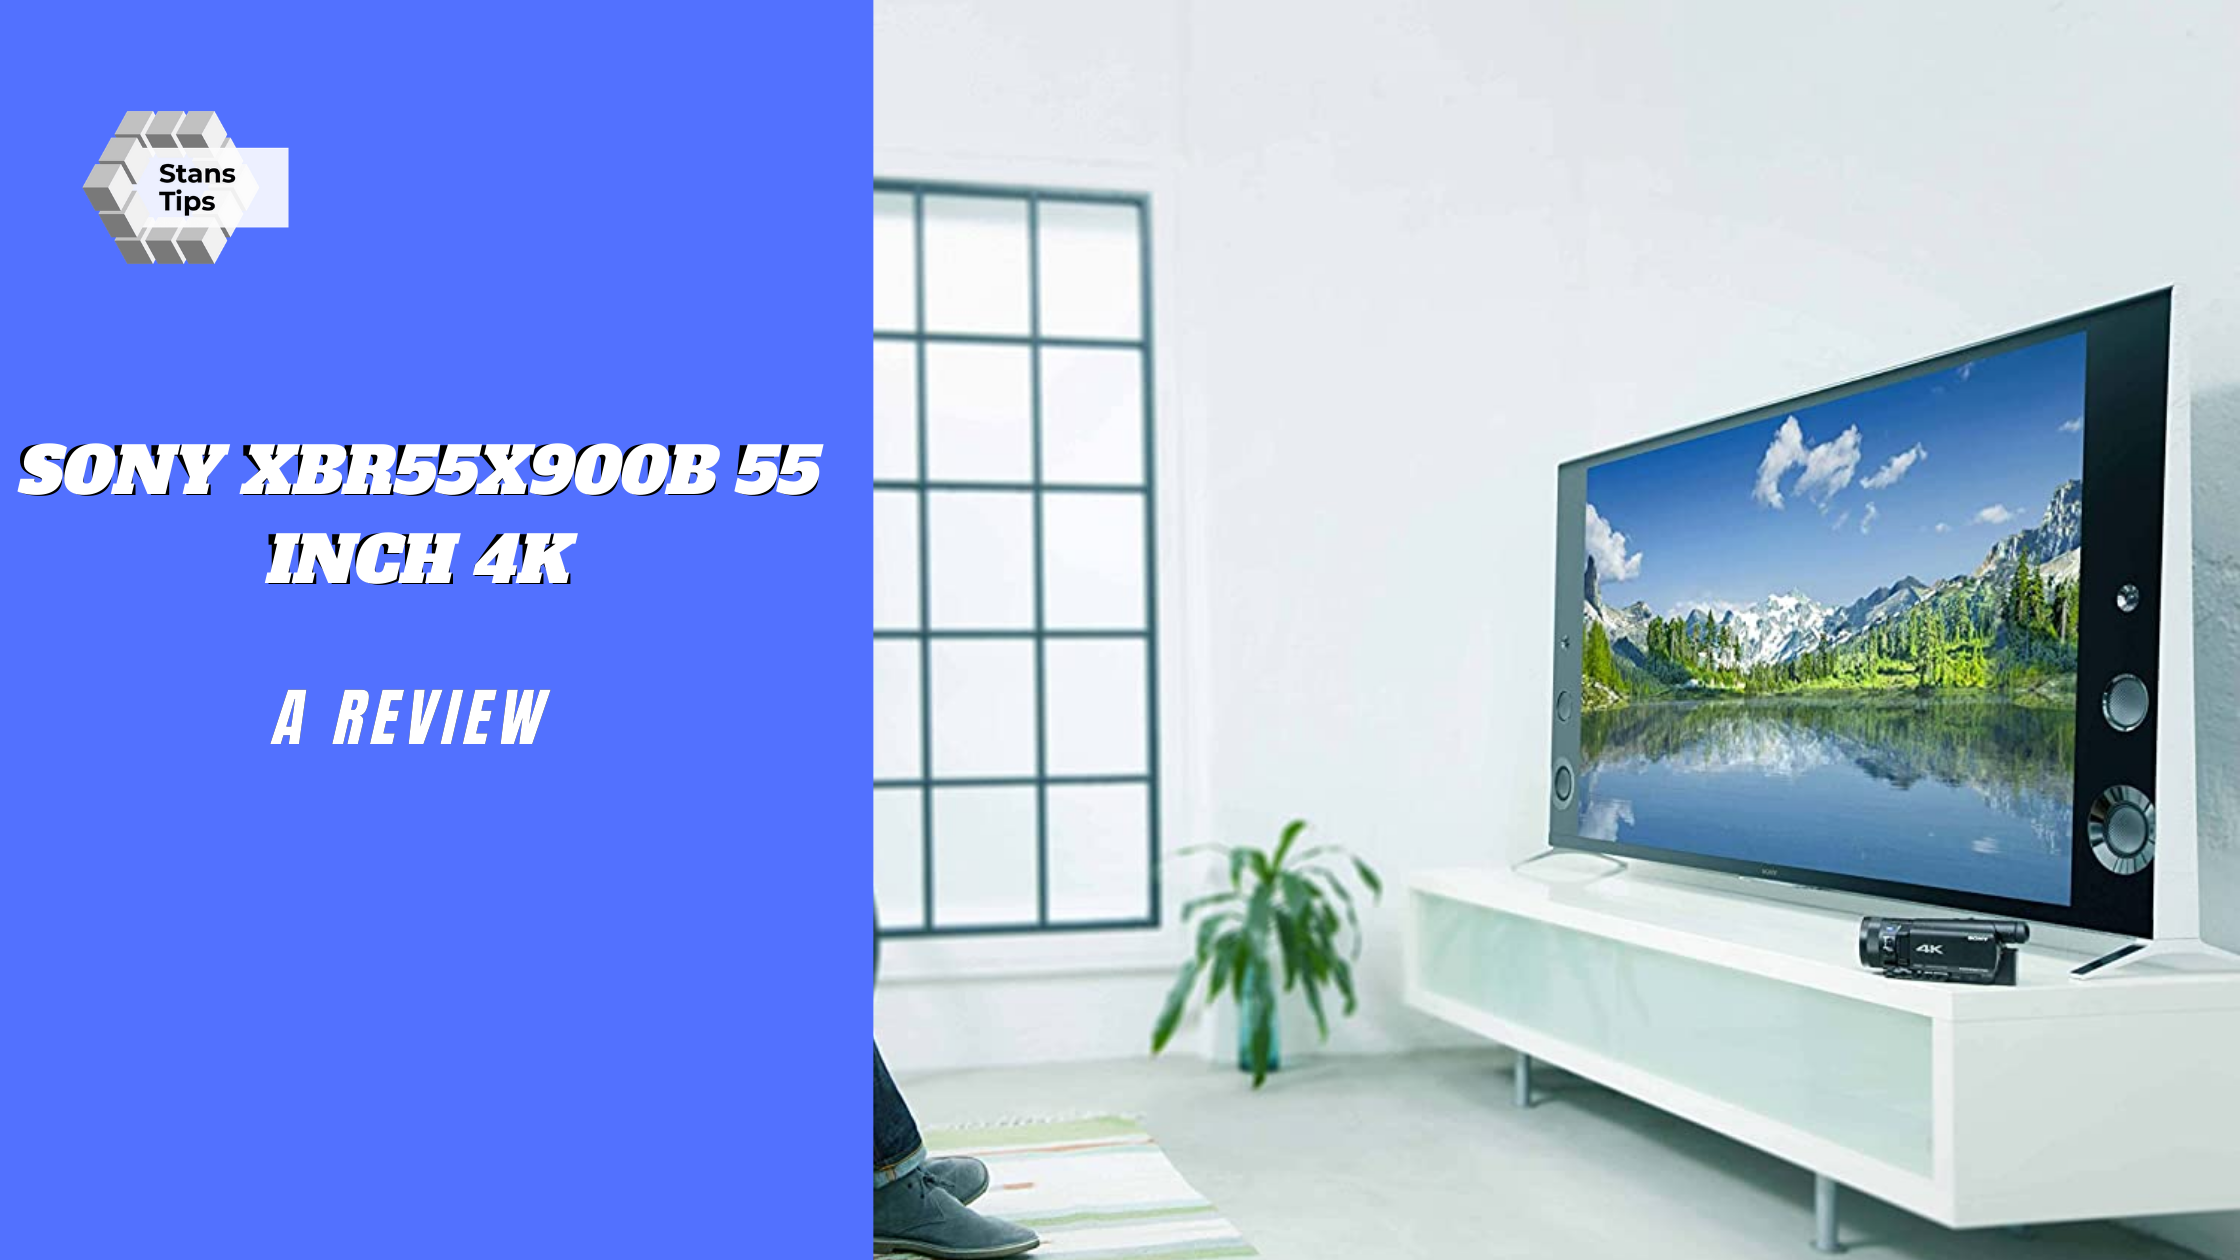 Sony Xbr55x900b 55 Inch 4k Ultra Hd 120hz 3d Led Tv